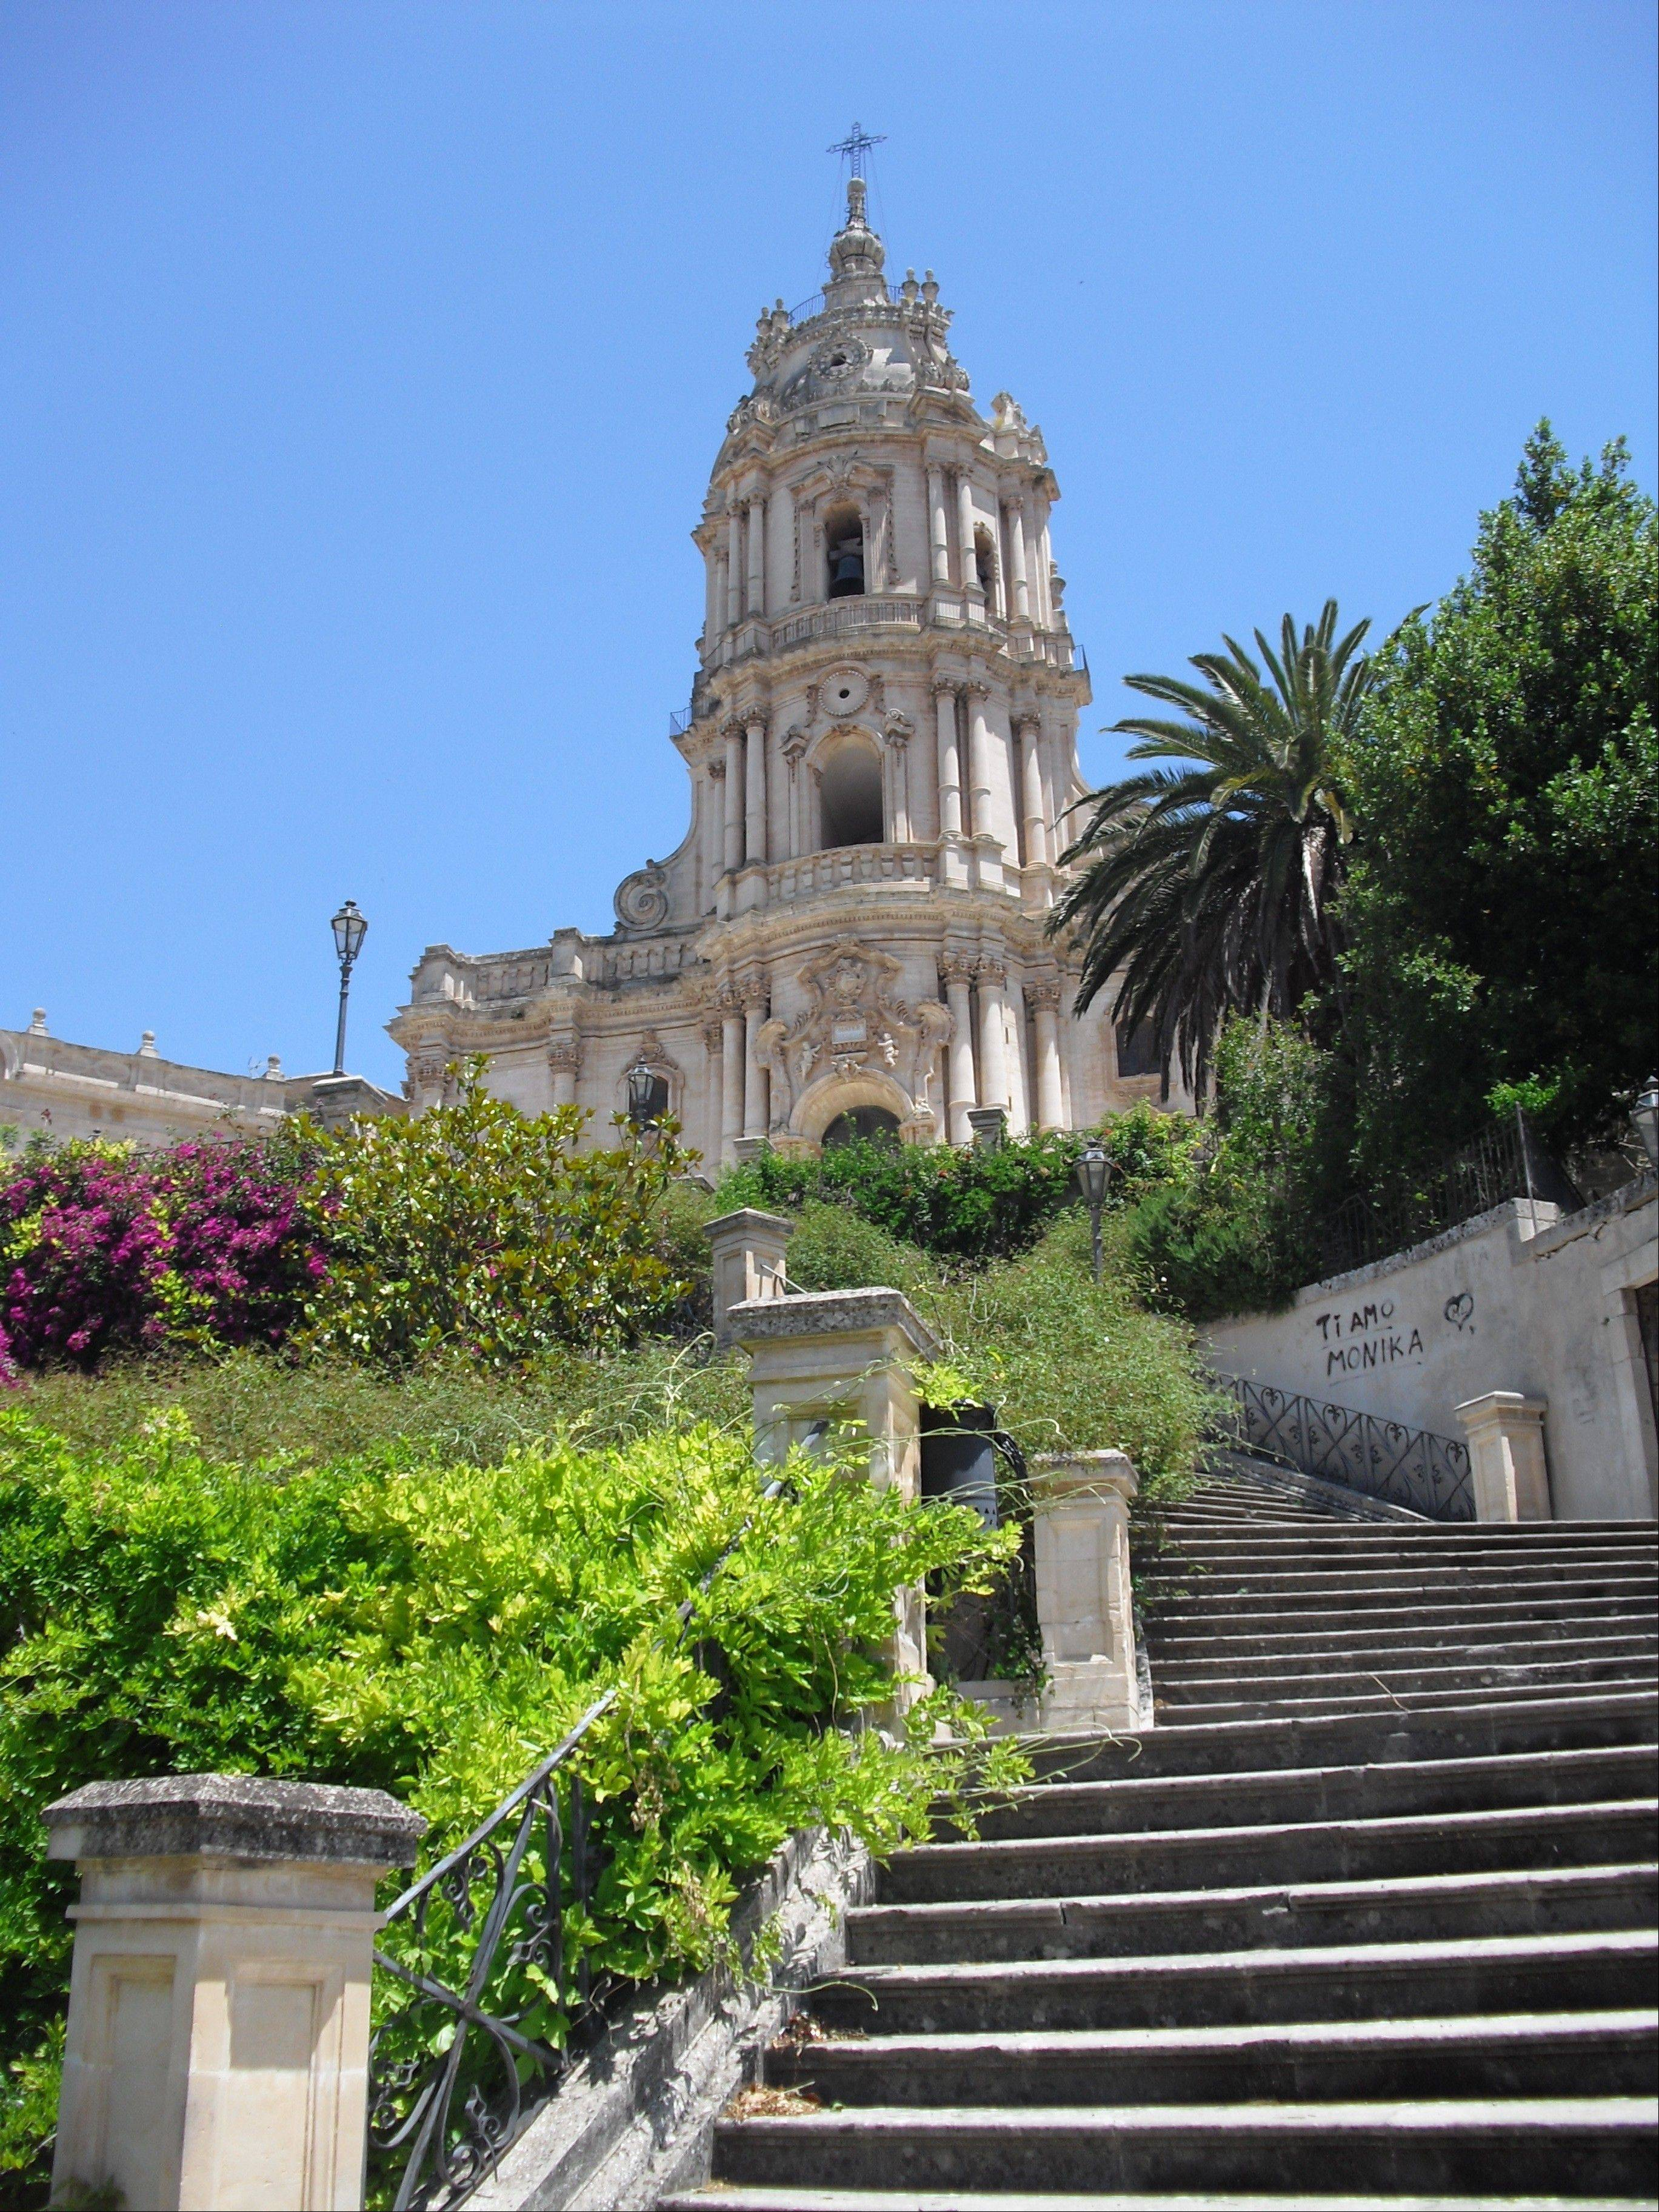 Stairs lead to the Chiesa di San Giorgio in the city of Modica in Sicily.